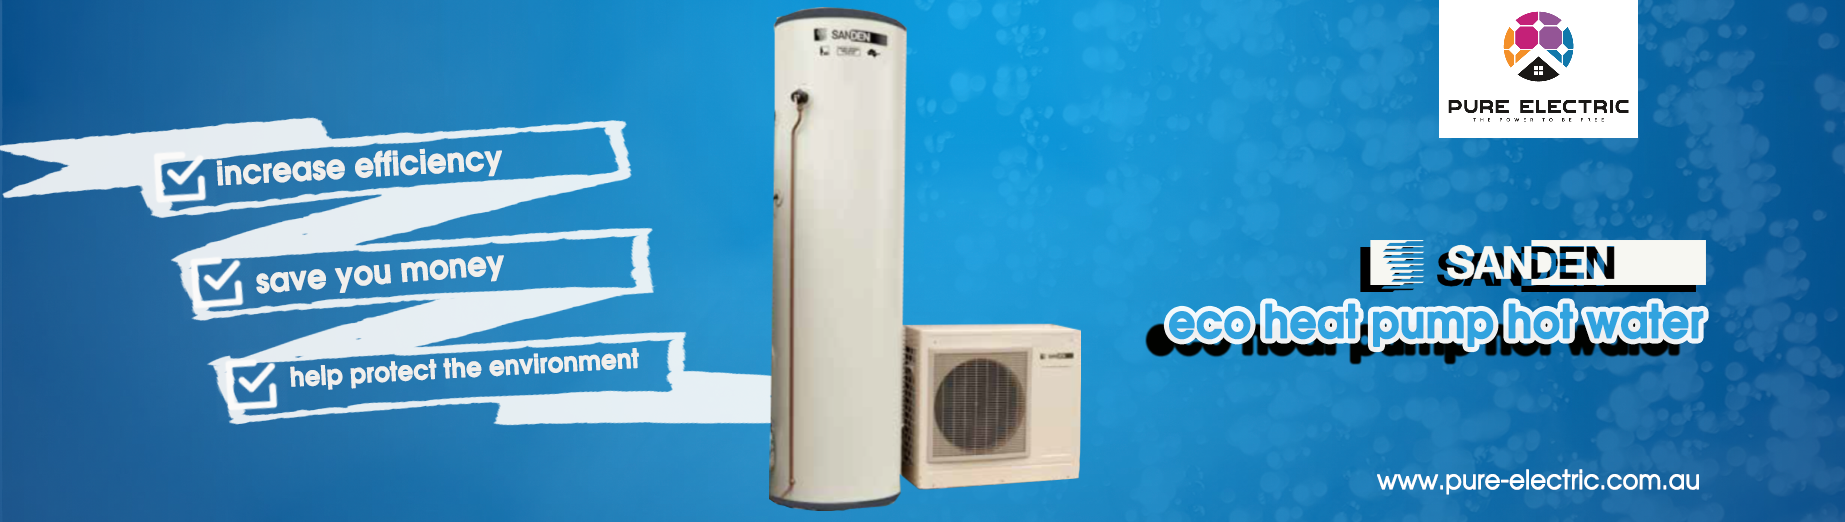 sanden-eco-heatpump